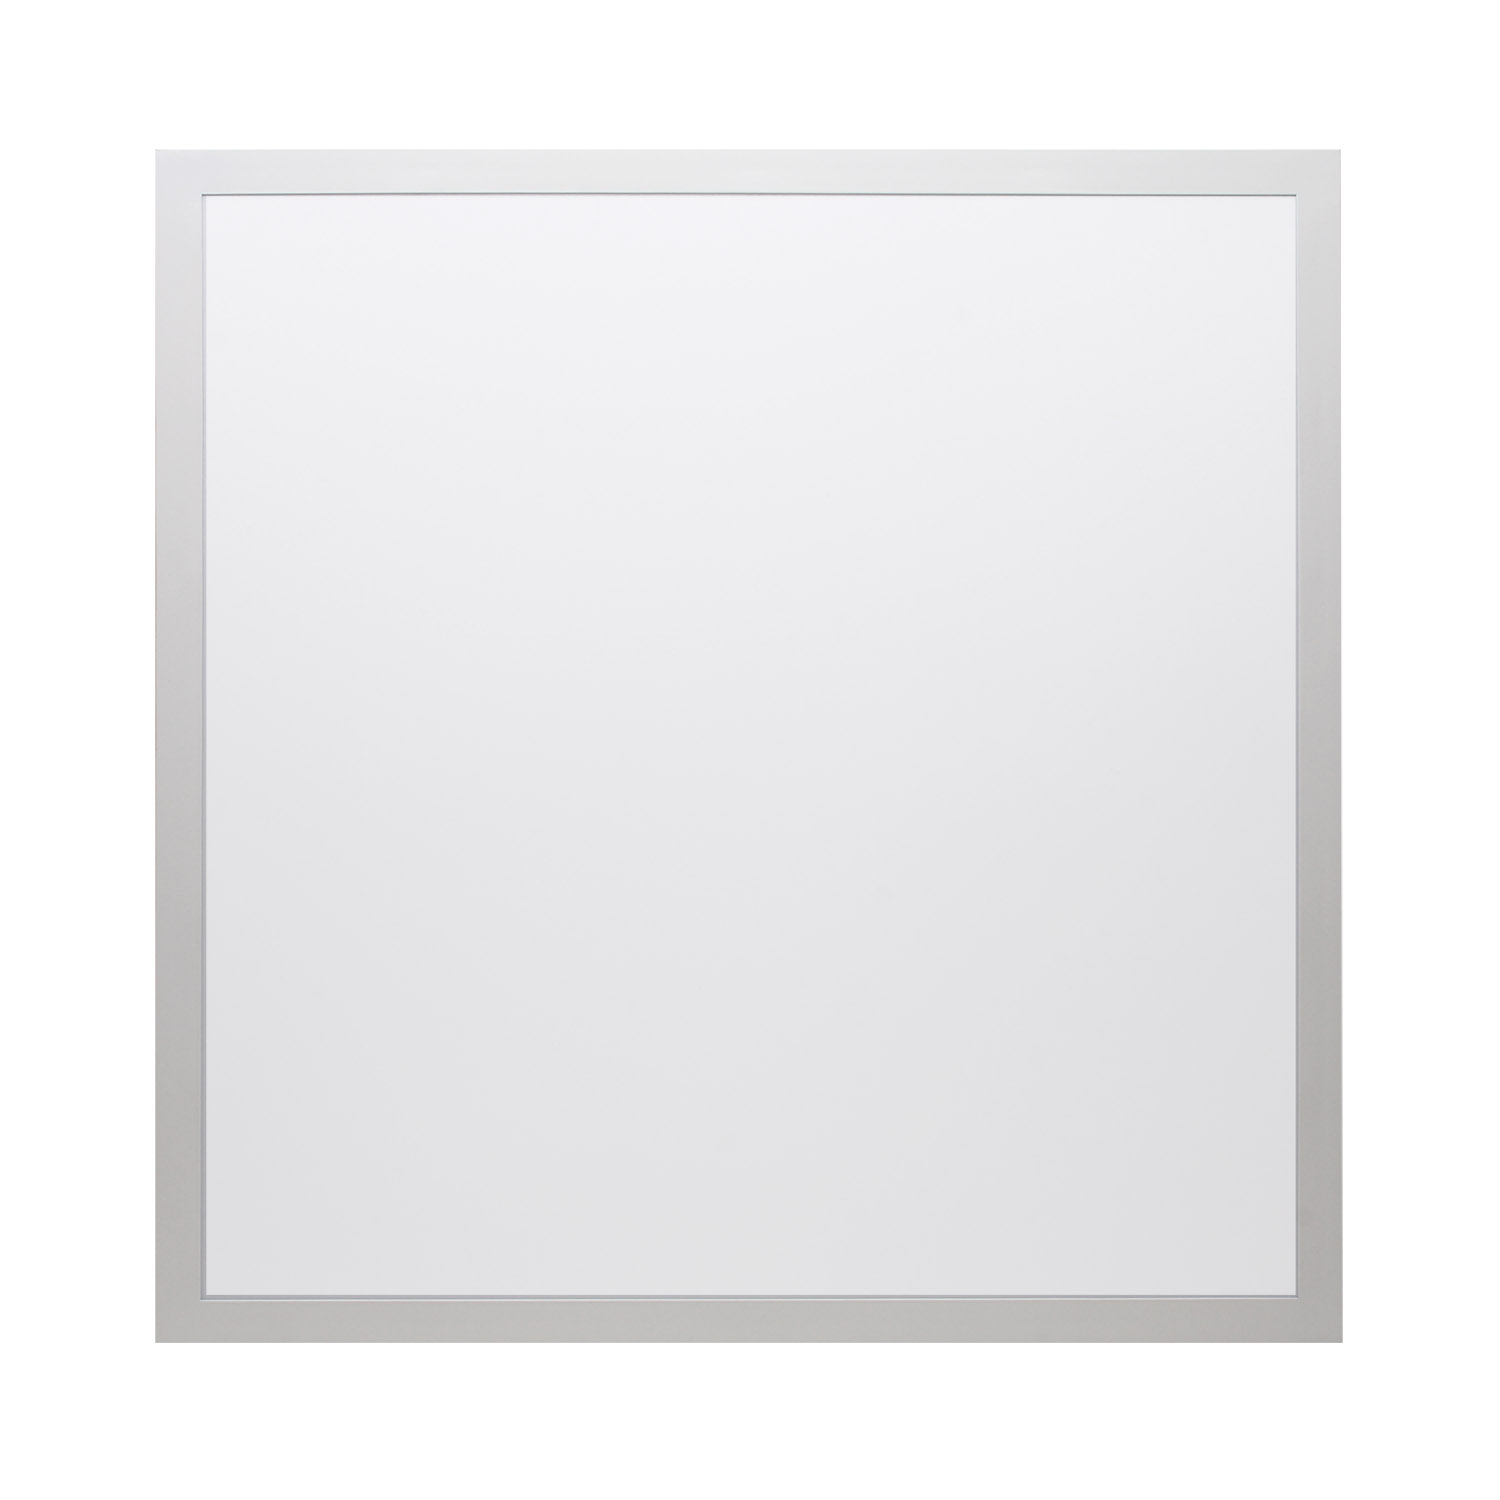 Plafón Led MARAK BIG 48W, 60x60cm, superficie, Blanco cálido